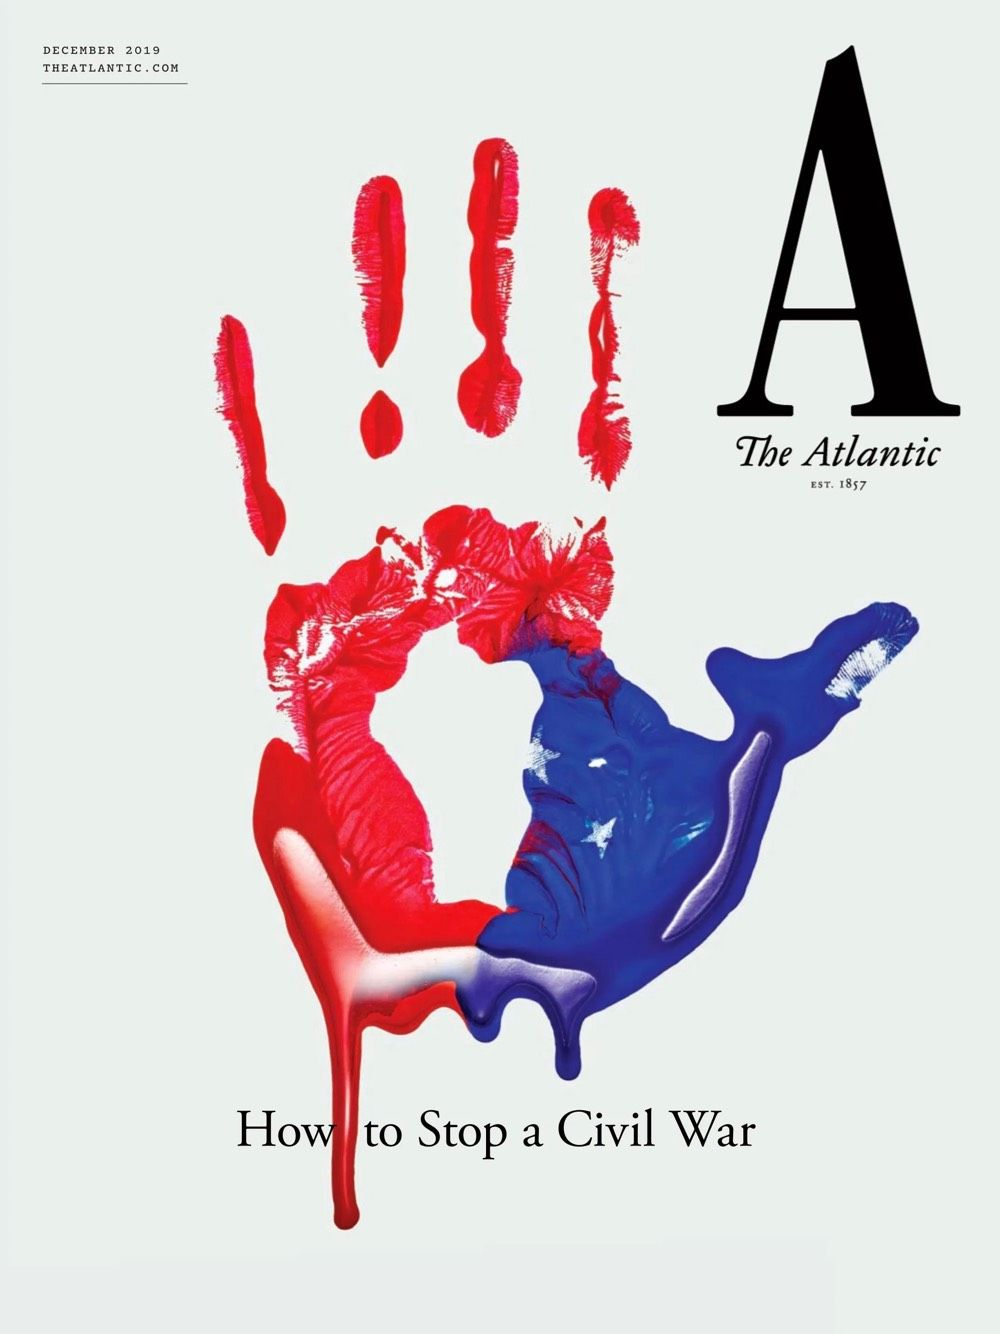 The redesigned cover of The Atlantic magazine.